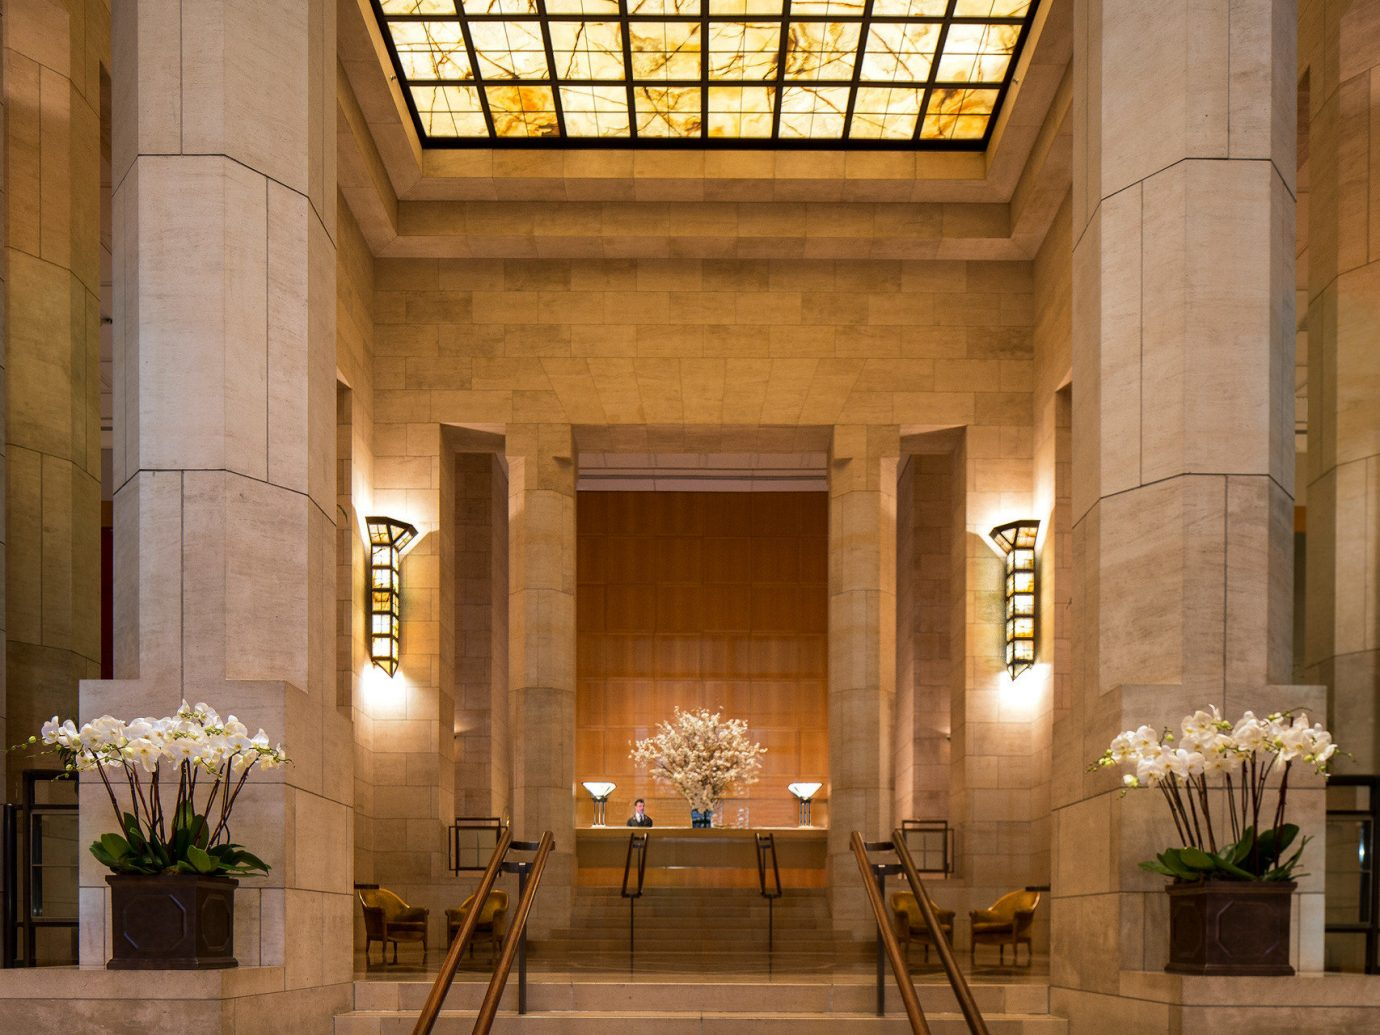 Hotels Luxury Travel Lobby building Architecture interior design lighting hall estate facade chapel tourist attraction place of worship synagogue